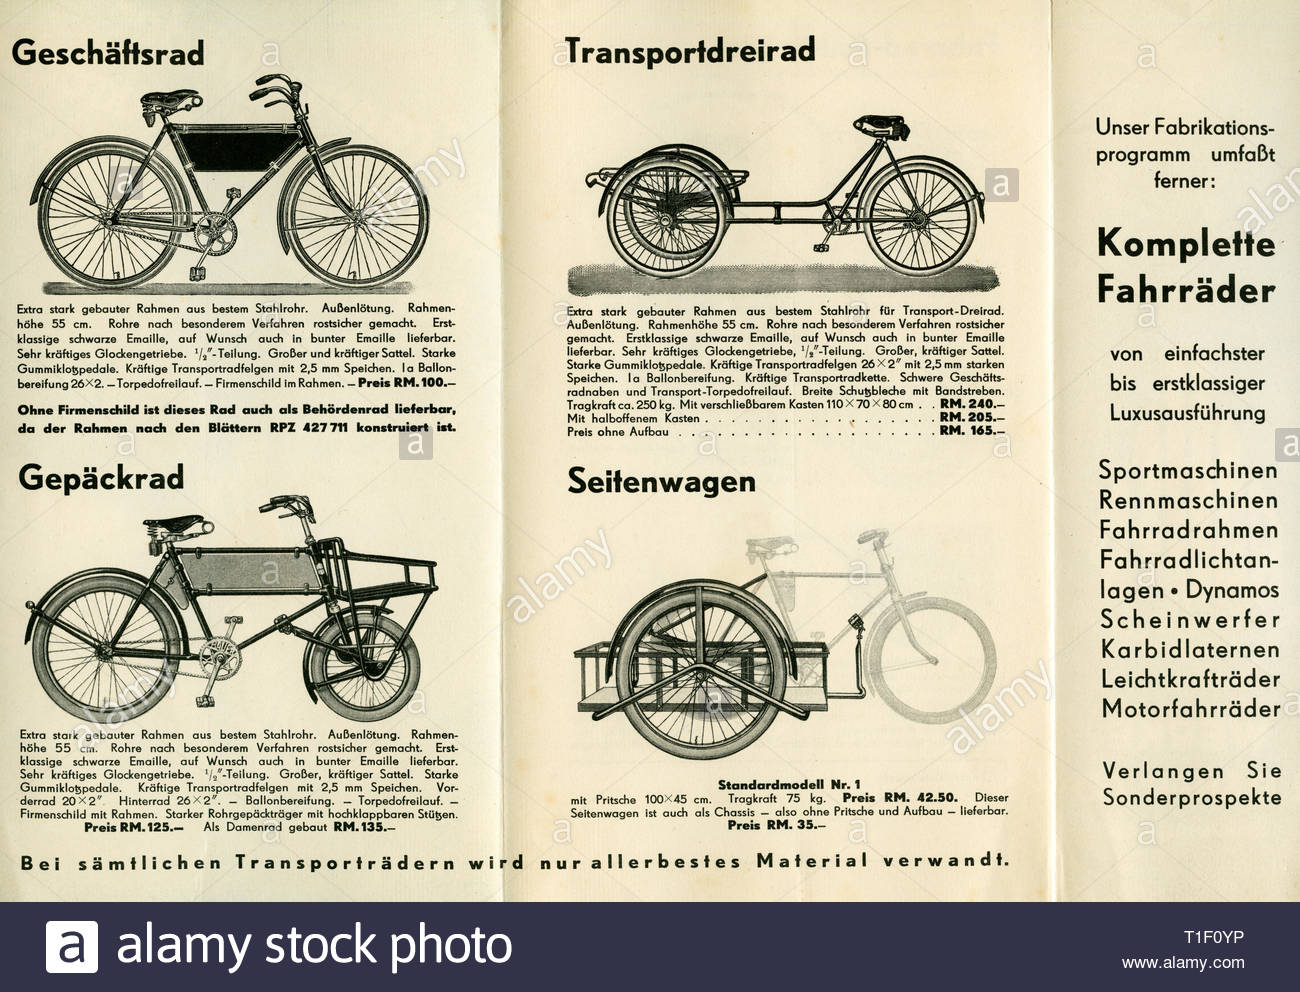 Bicycle brochure of the Bauer company (insolvency 1968), offer for transport bicycles and trailers, you see the pages inside of the brochure, published 1936., Artist's Copyright must also be cleared - Stock Image